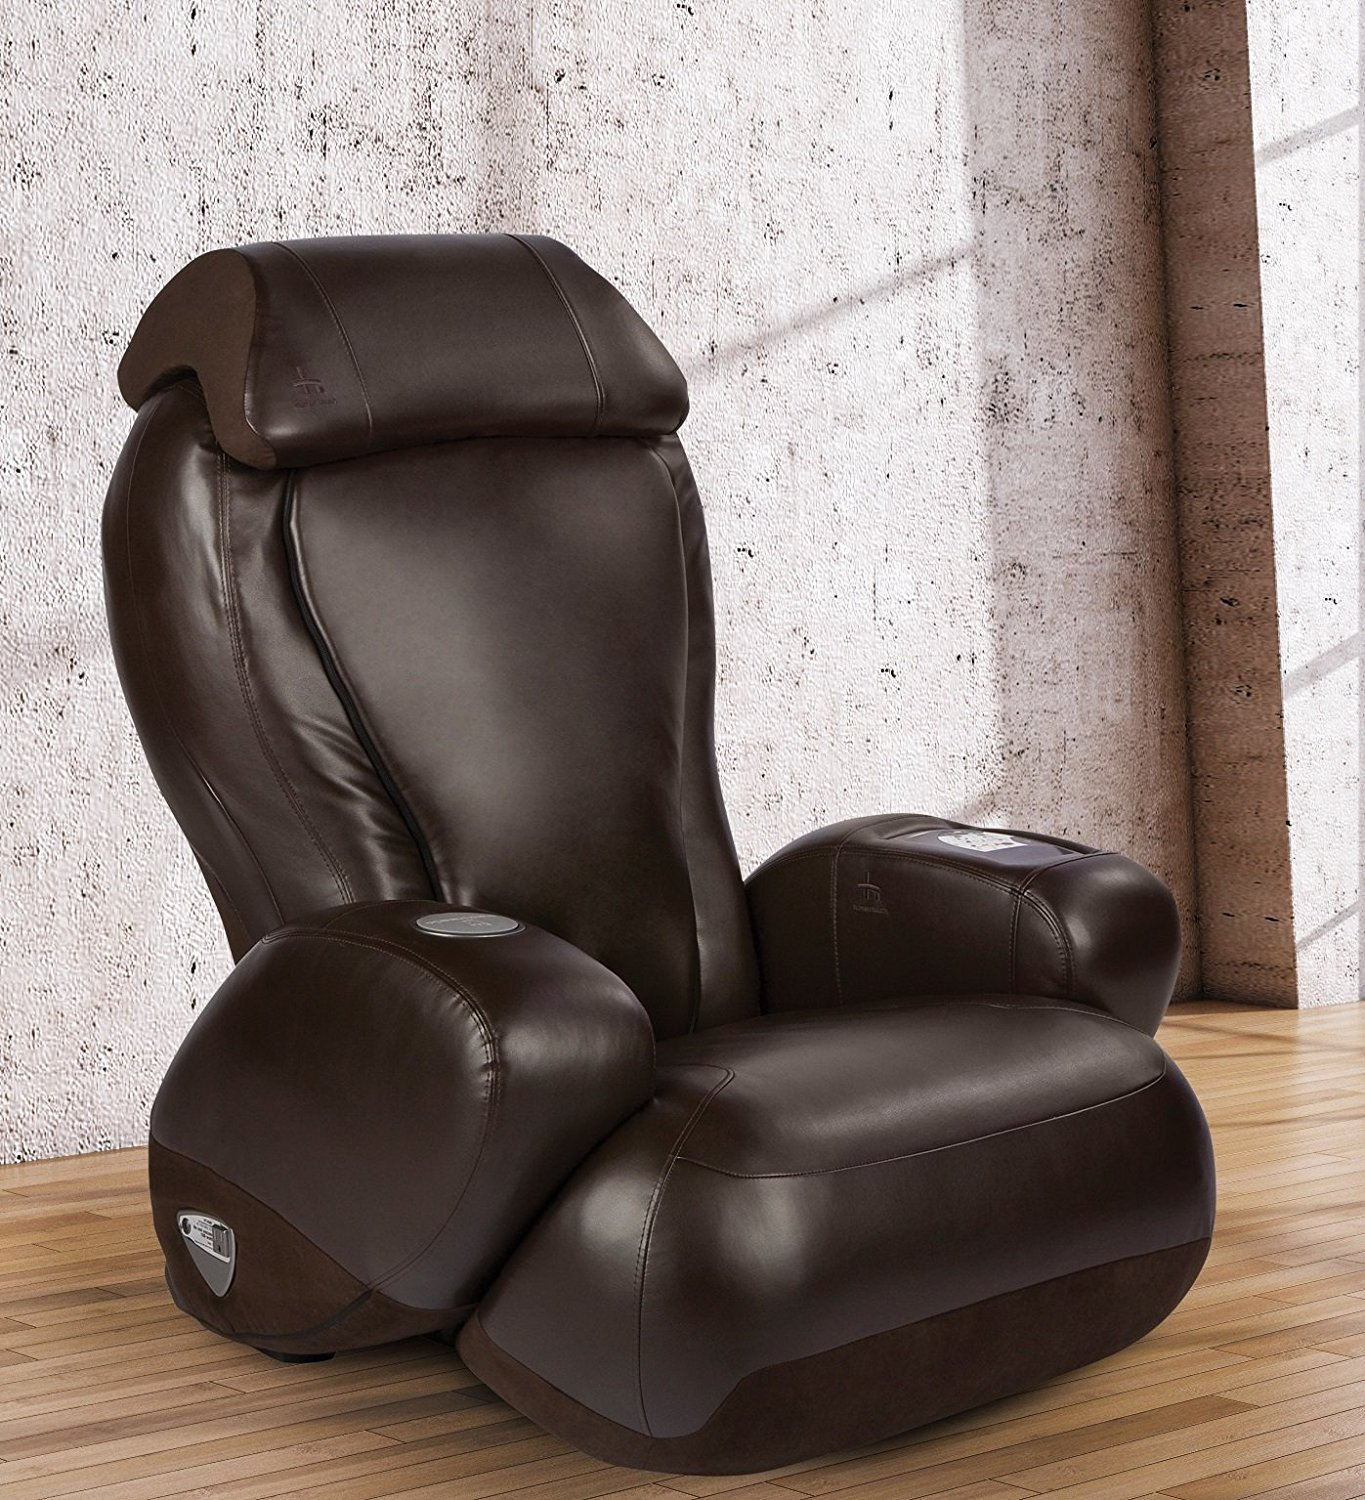 iJoy Massage Chair Reviews – iJoy 2580